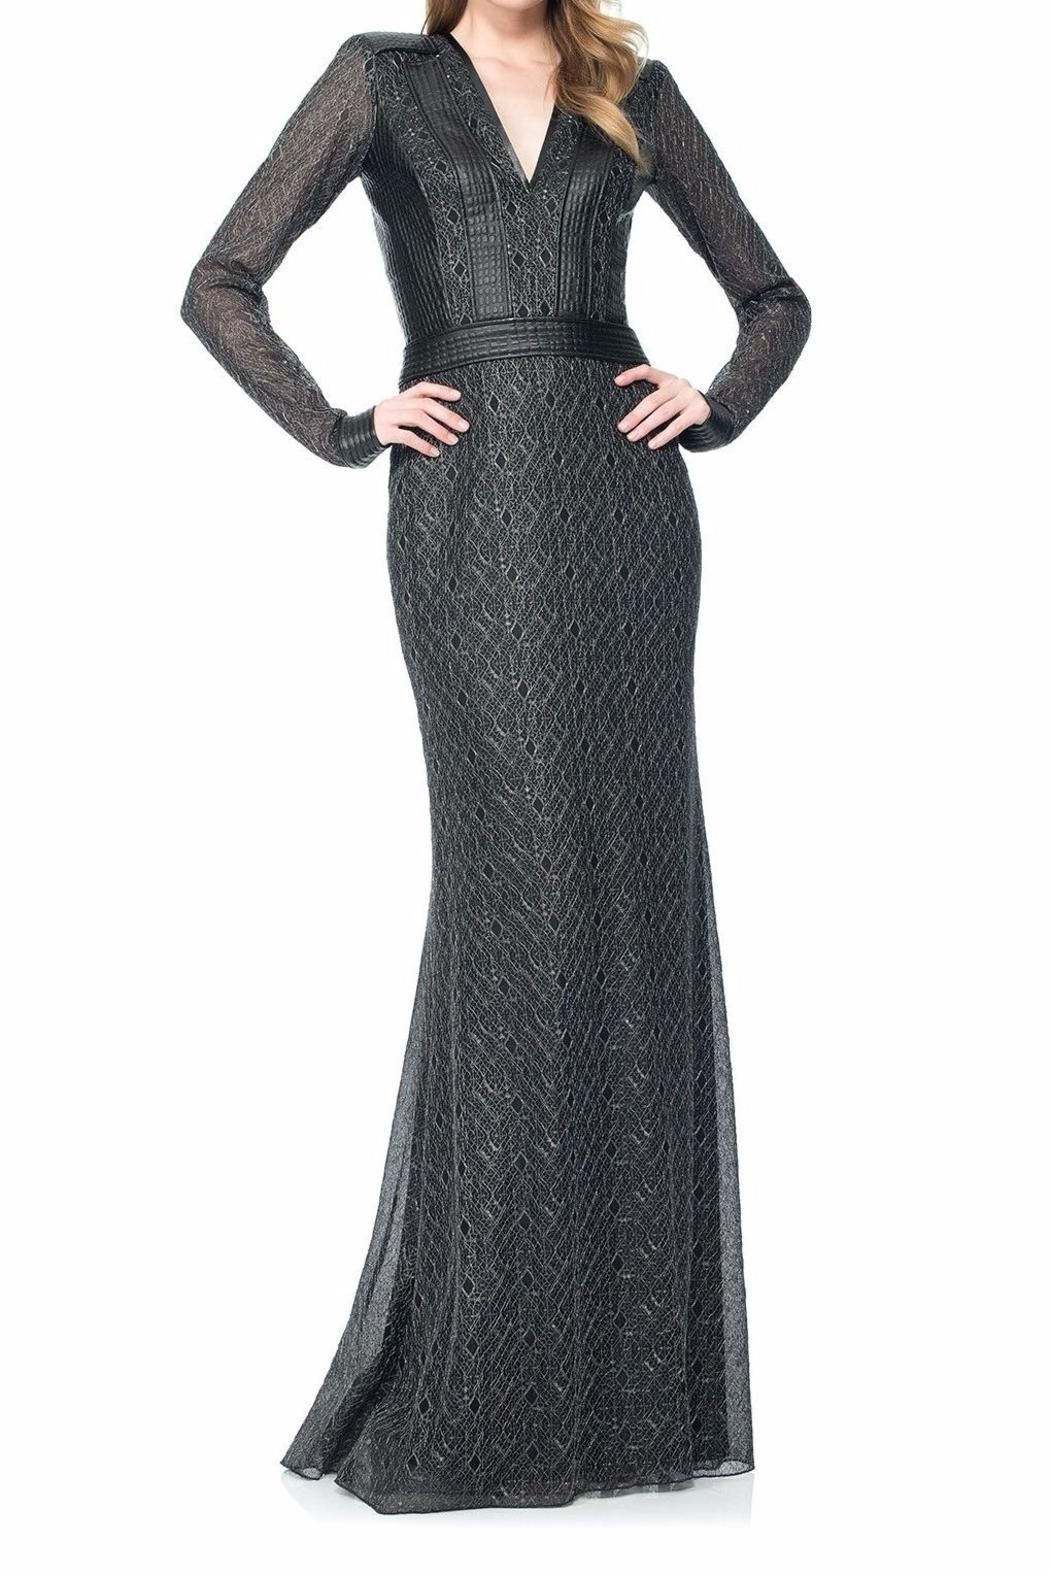 b37e261dde1b Long Sleeve Marta Lace Gown. Dress has Illusion Sheer Long Sleeves, and a  Banded Leatherette Waist and Cuffs. It has a Metallic Lace Diamond Motif  Overlay.